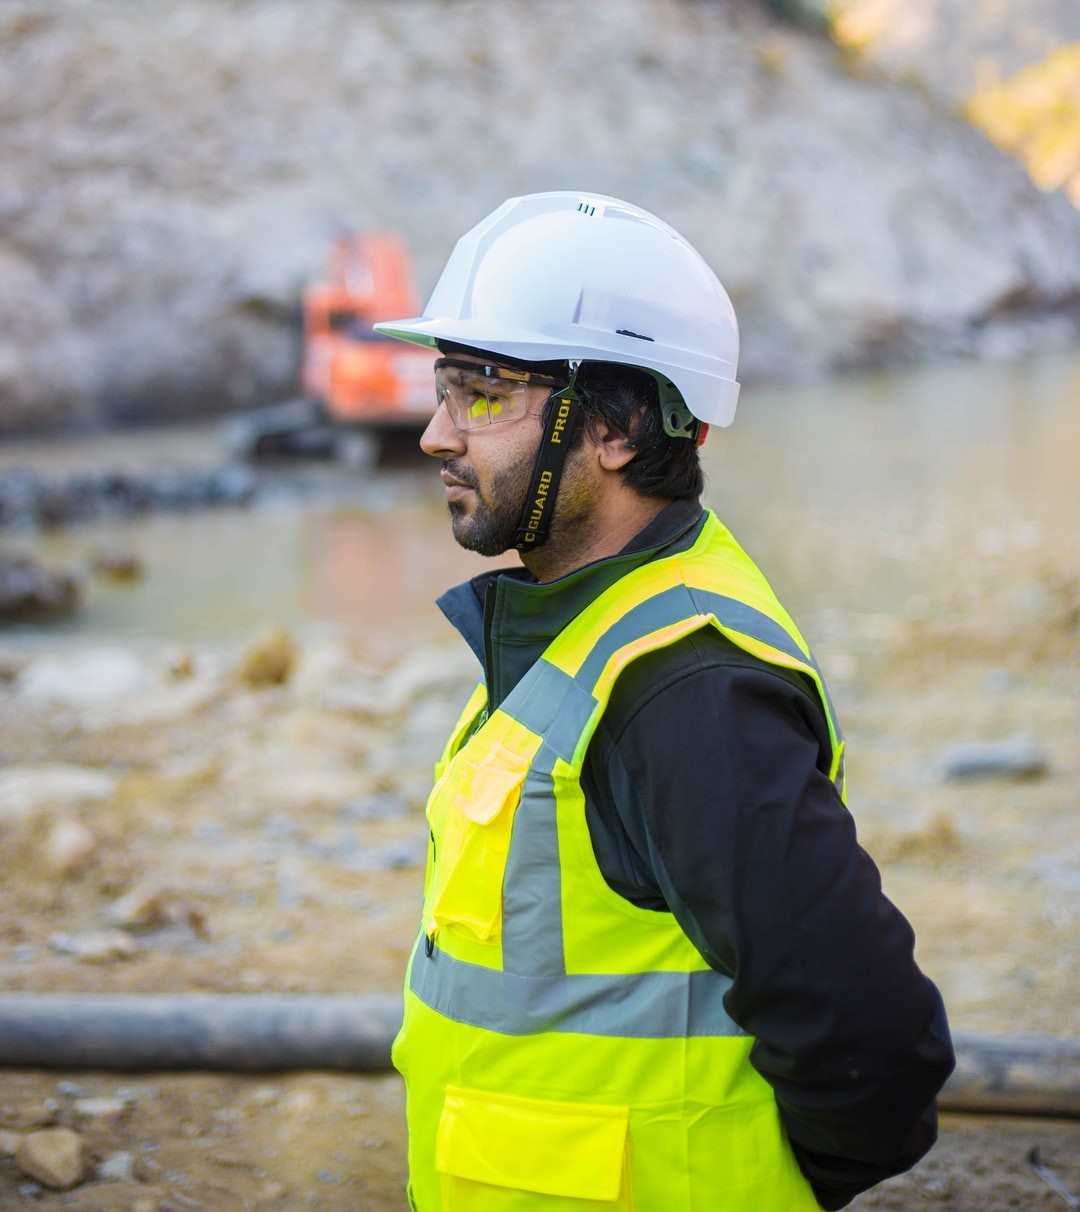 During Health & Safety audit at a site in Pakistan.